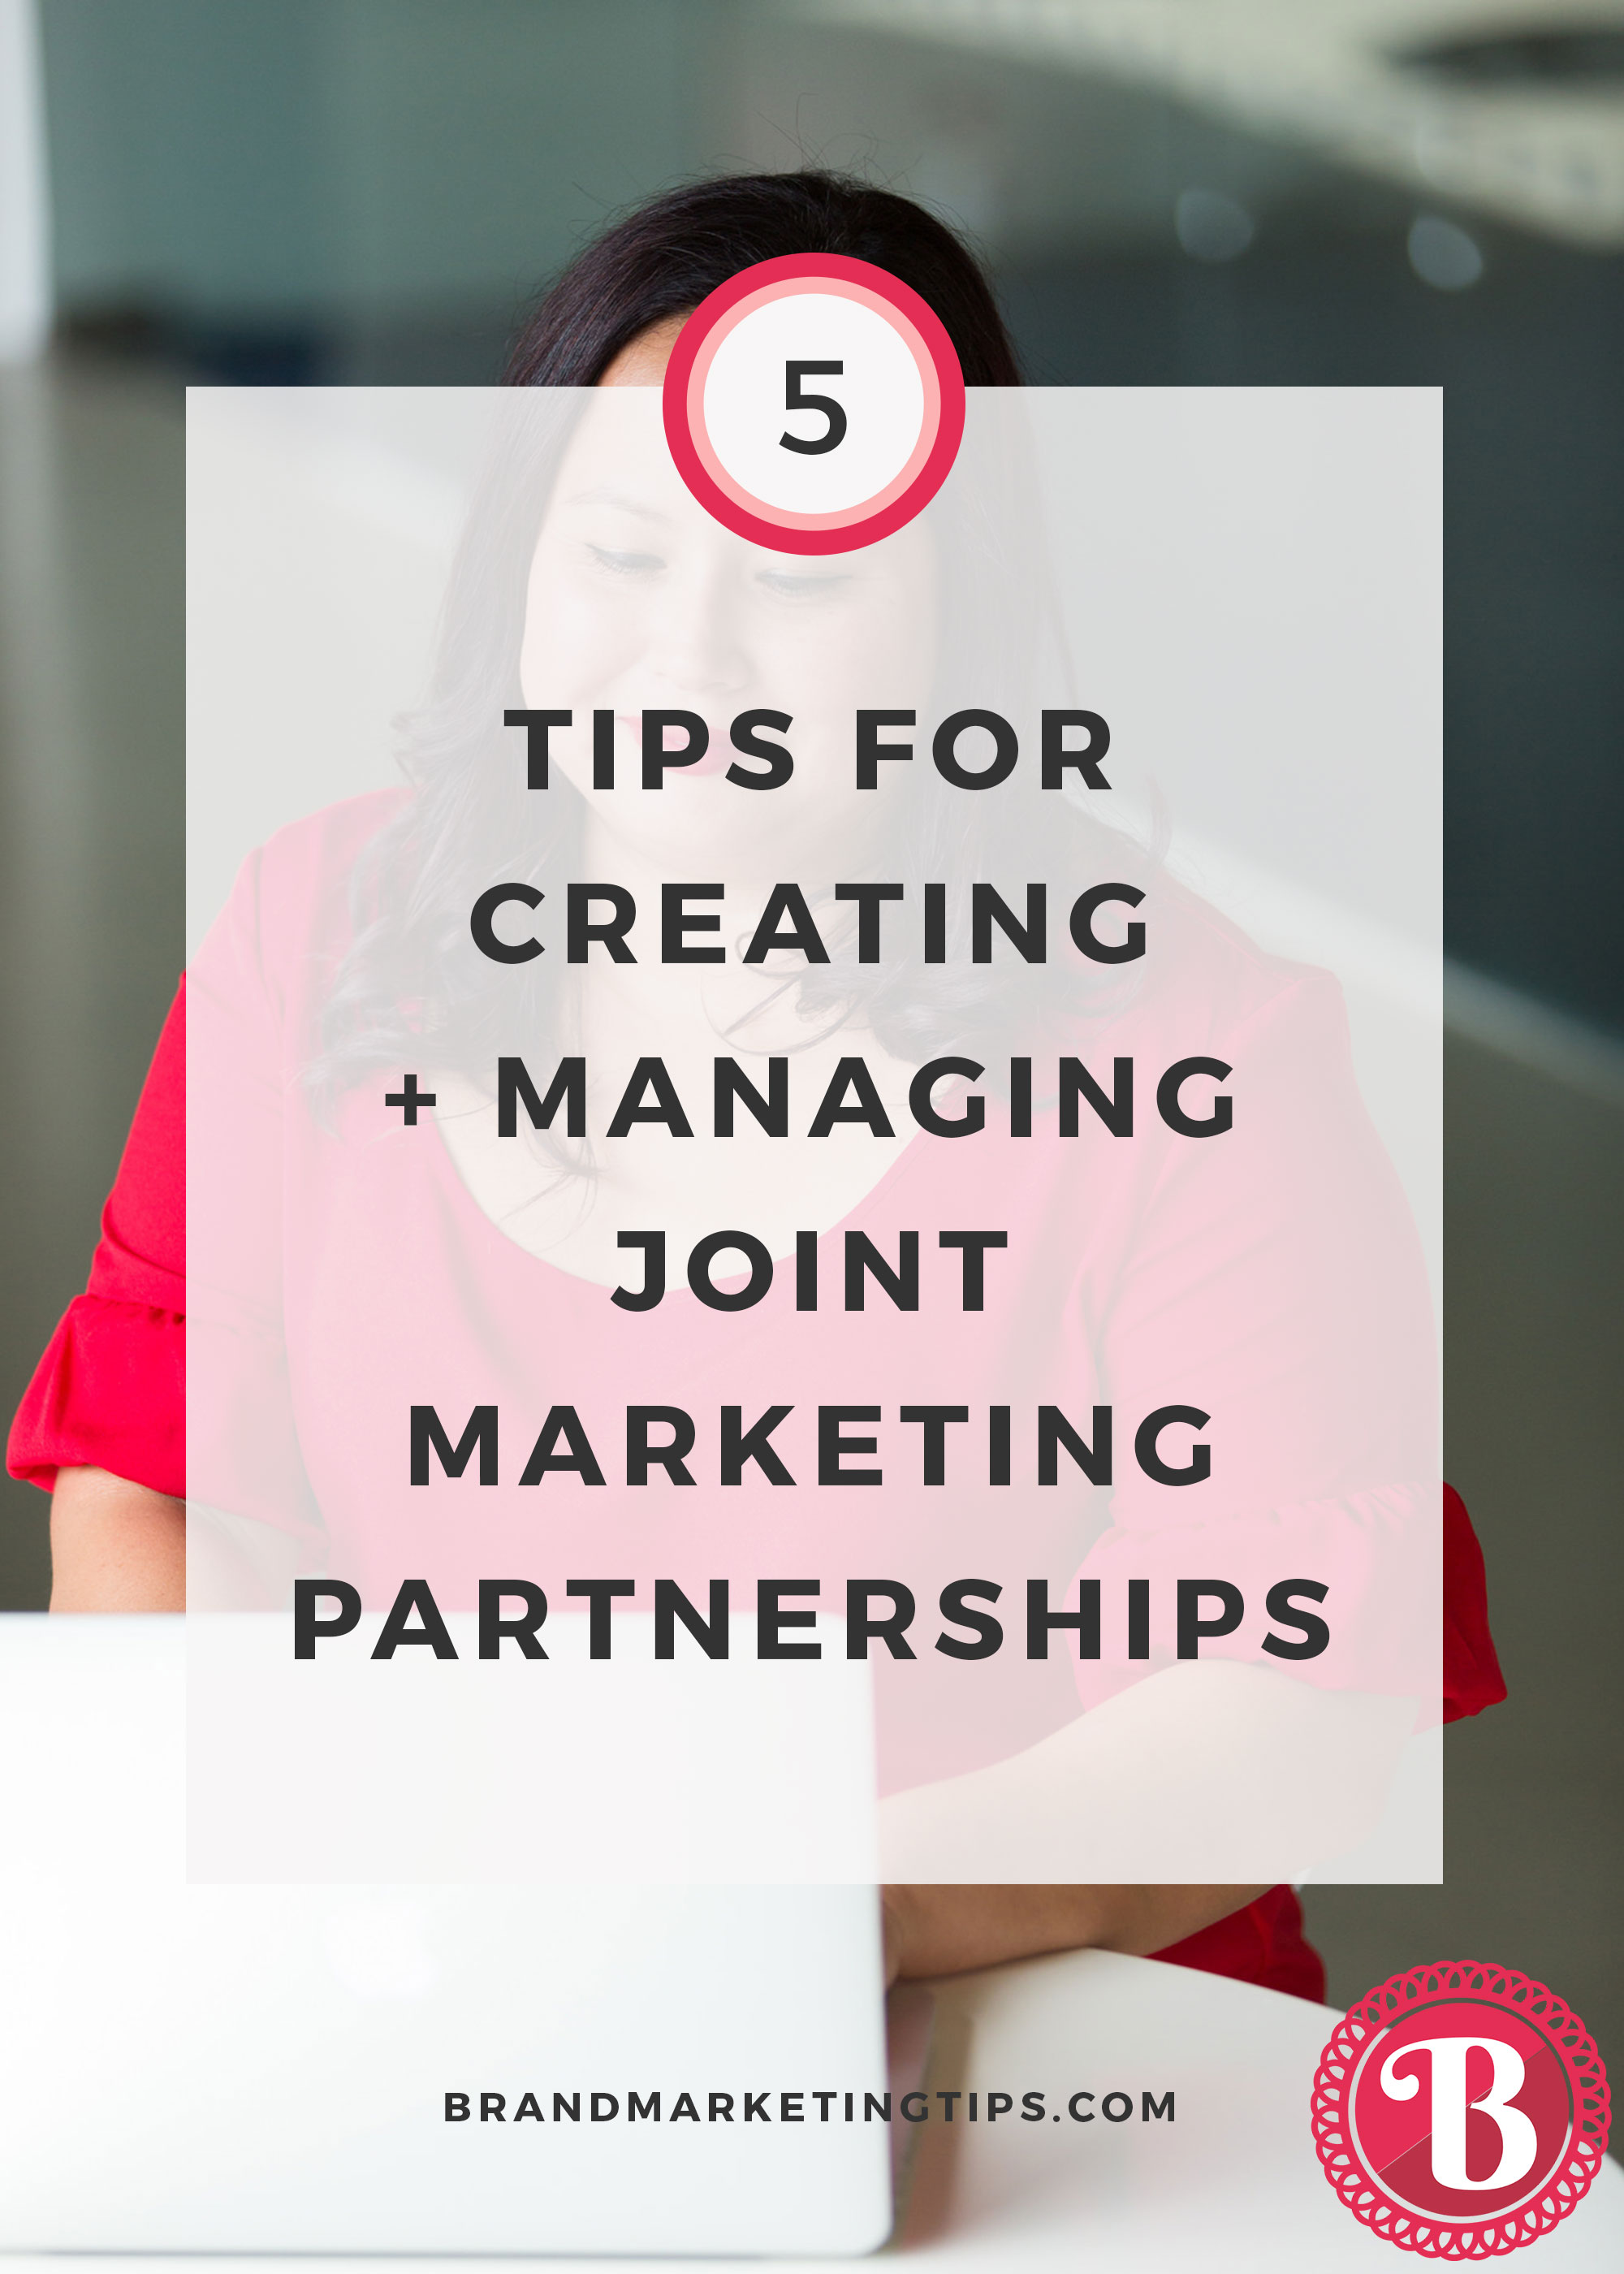 Creating Joint Marketing Partnerships